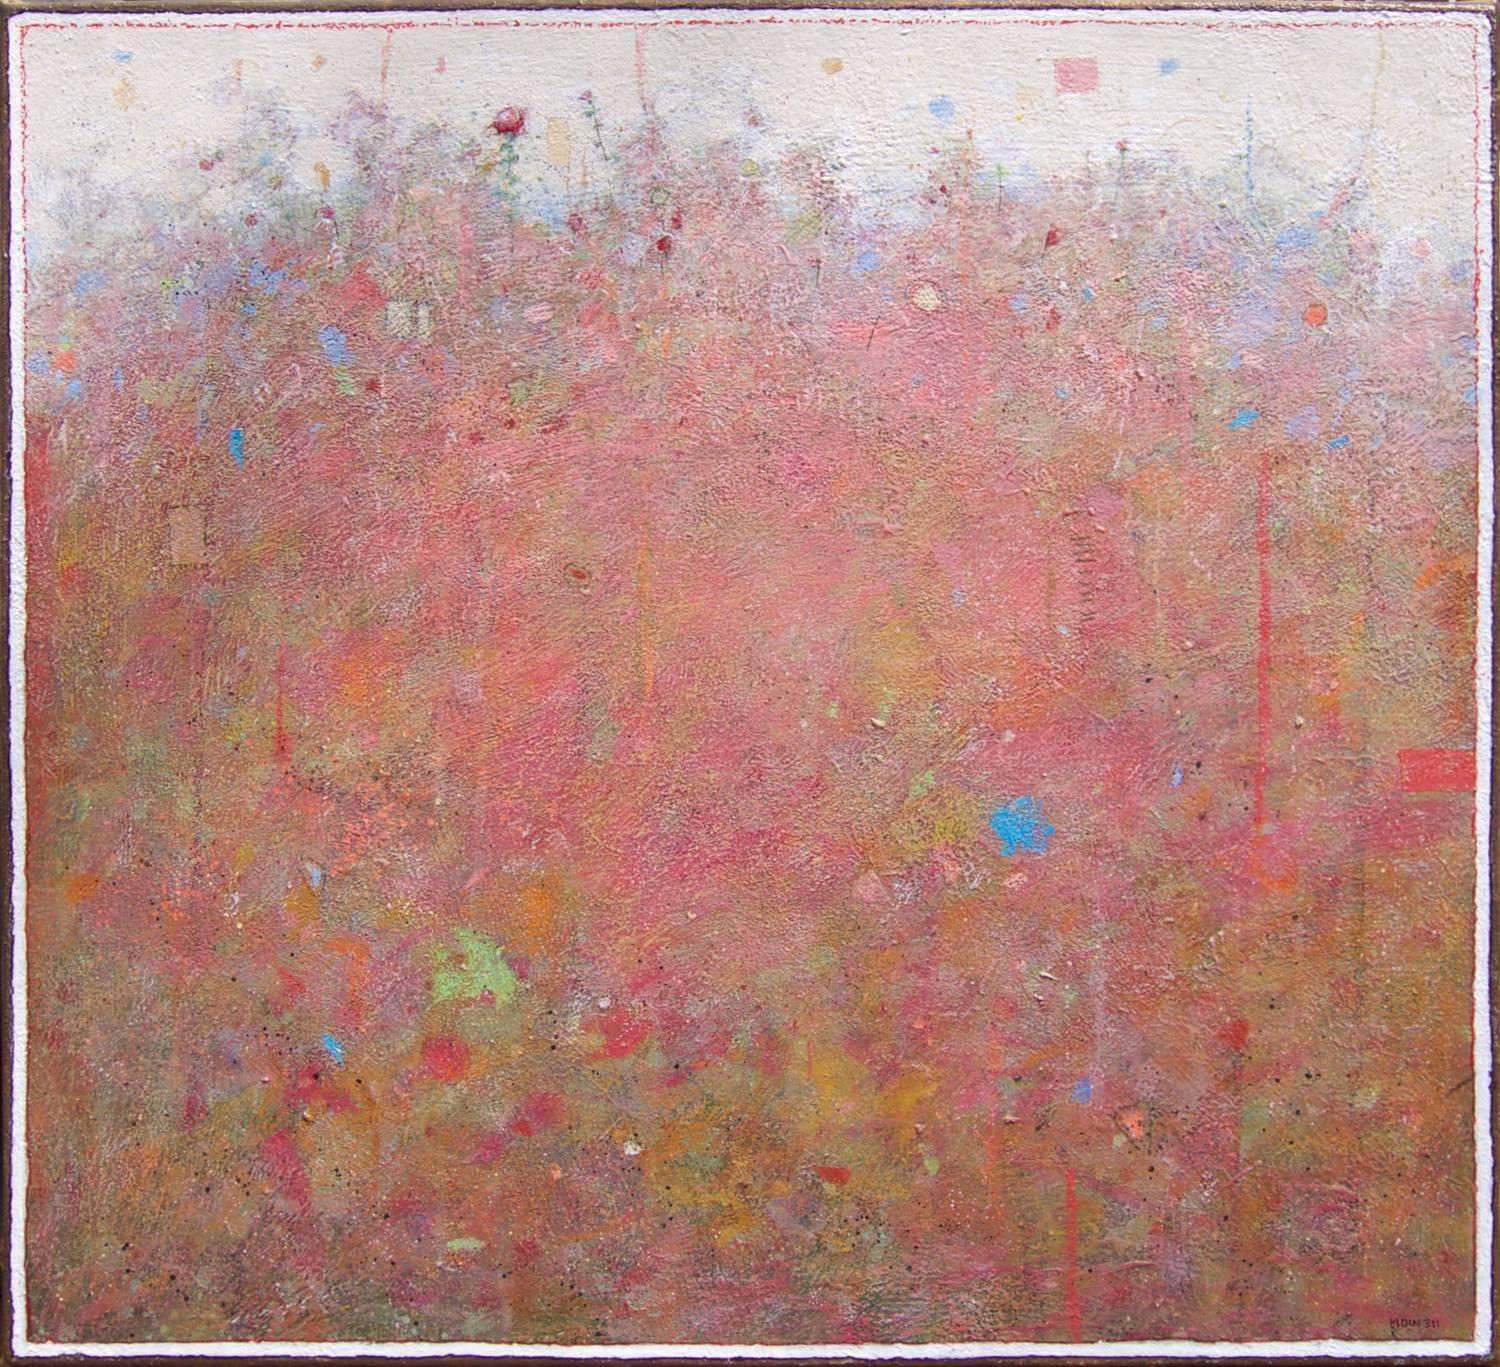 'Last Bloom', Minimalist Abstract Contemporary Landscape Acrylic Painting